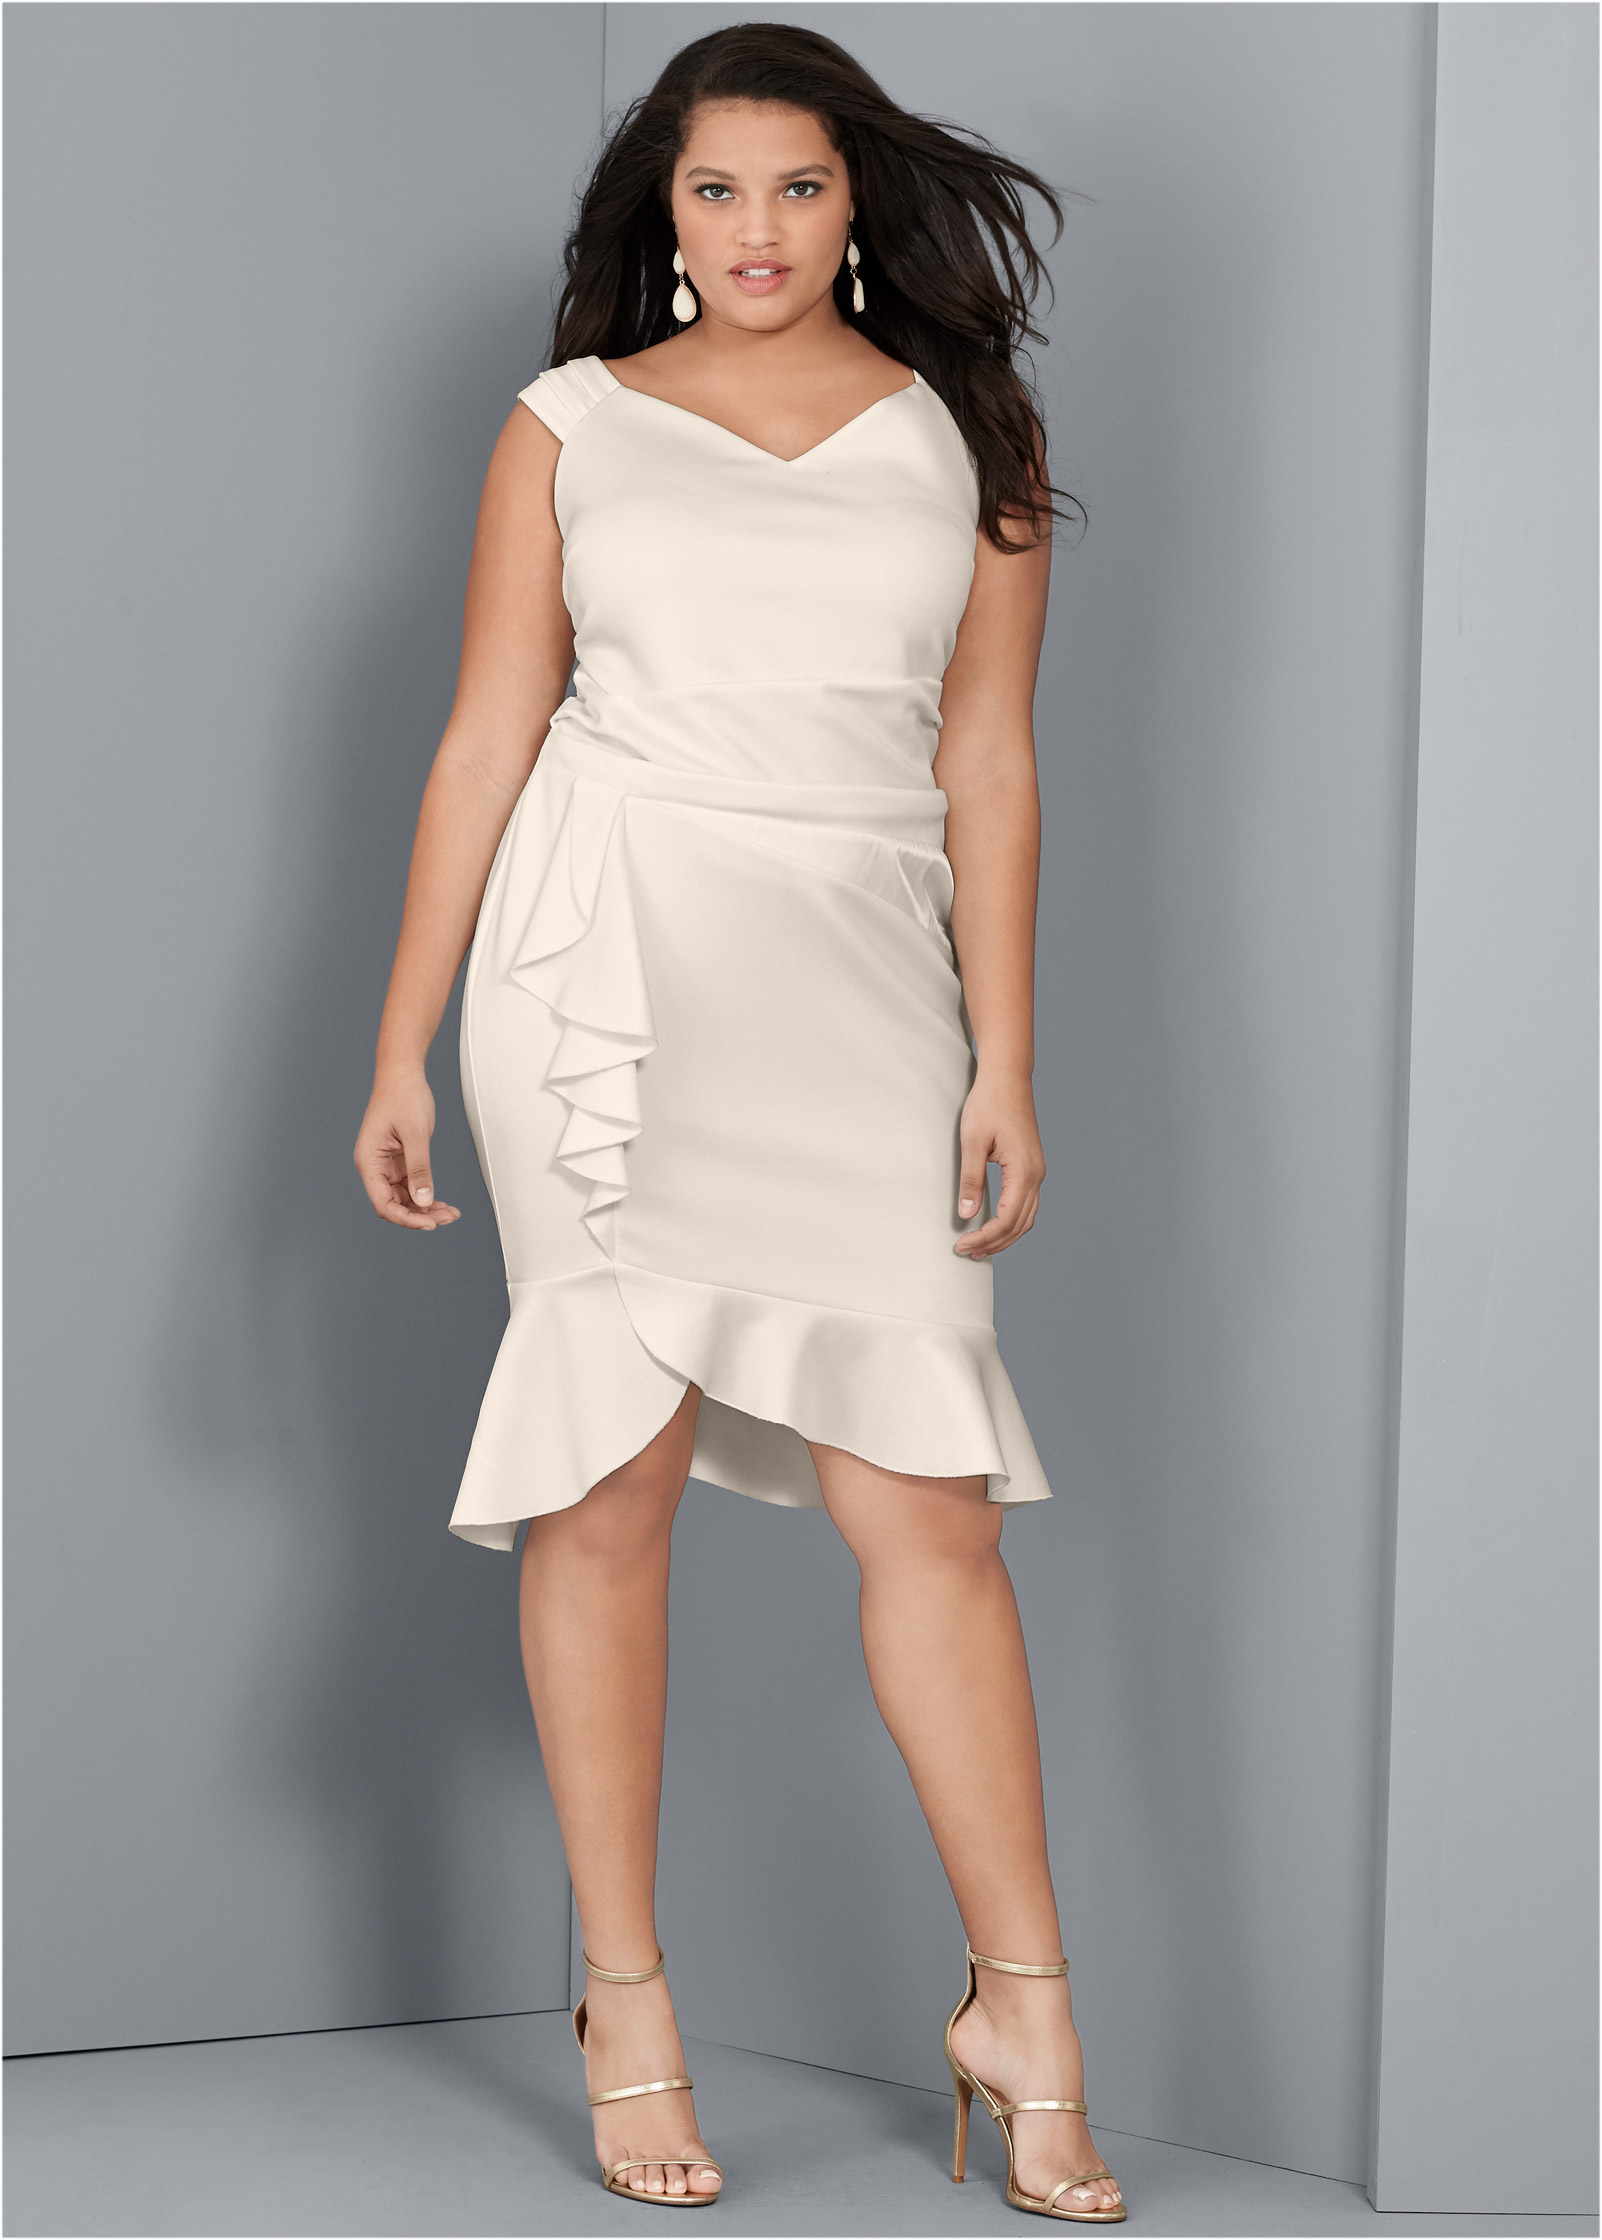 Colorful Plus Size Semi Formal Dresses for Women